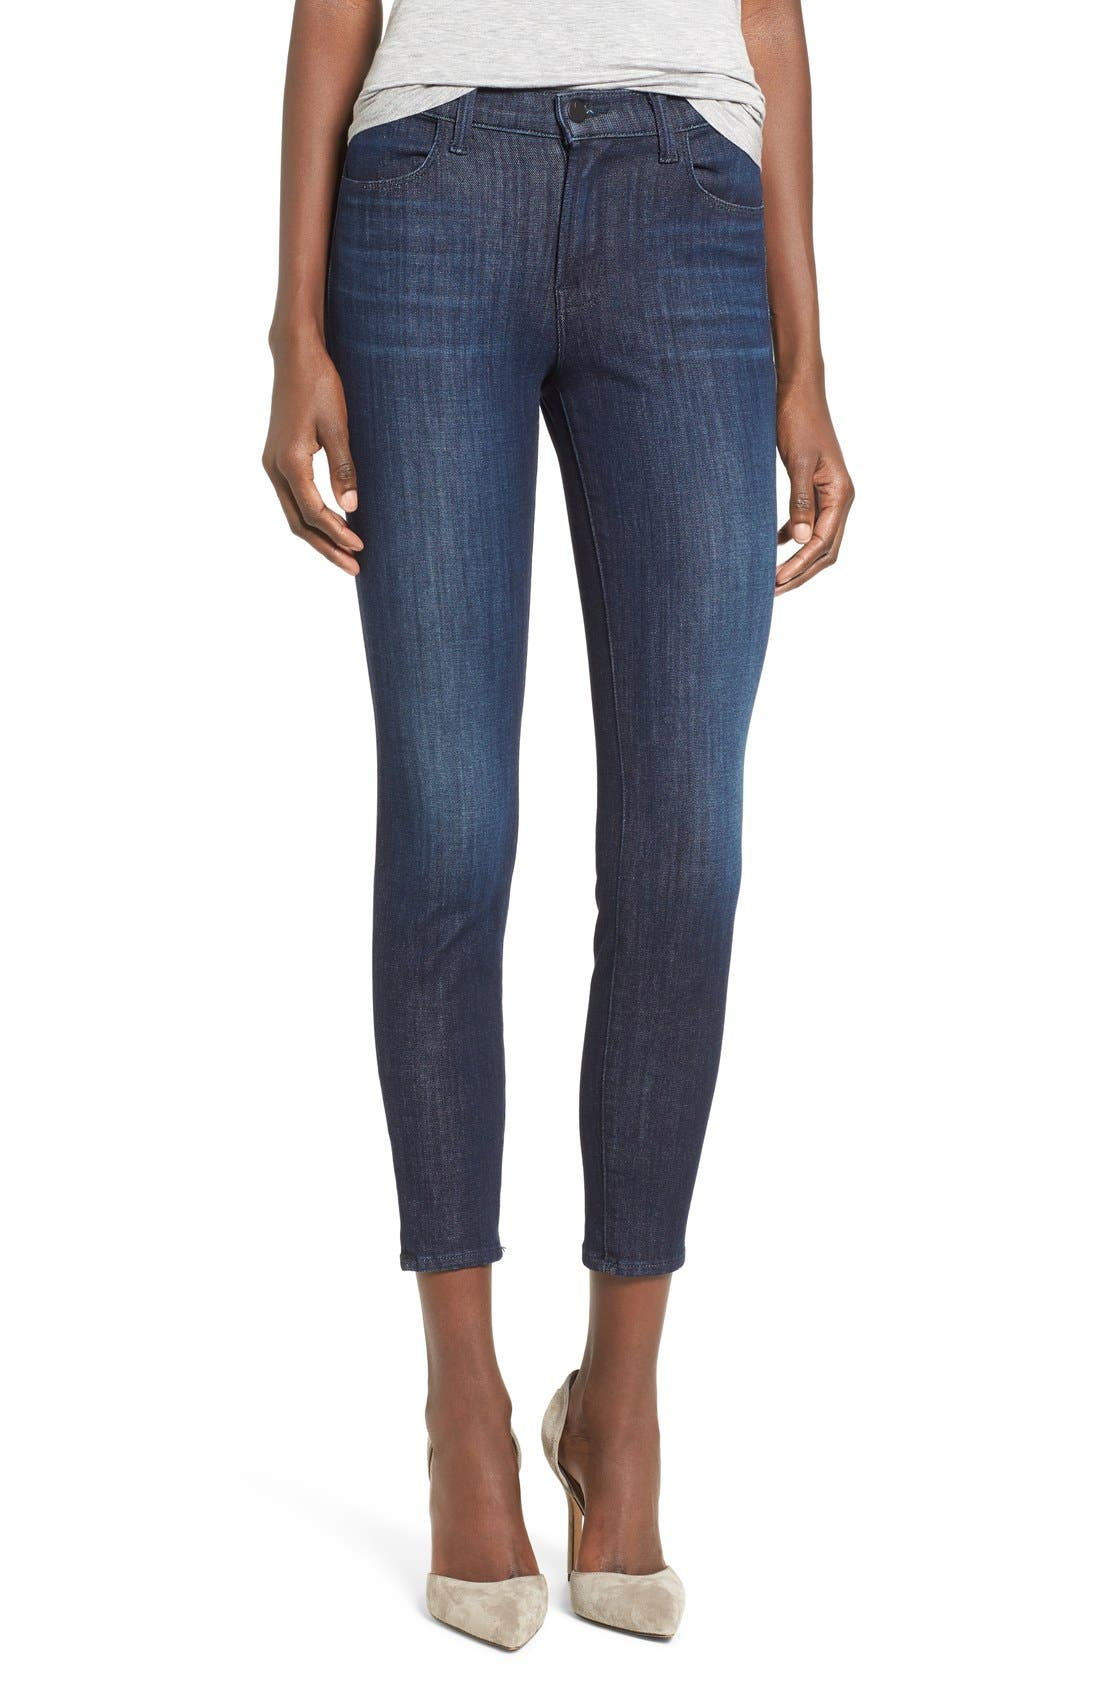 J BRAND Alana Ripped High Rise Crop Skinny Jeans, Main, color, 408